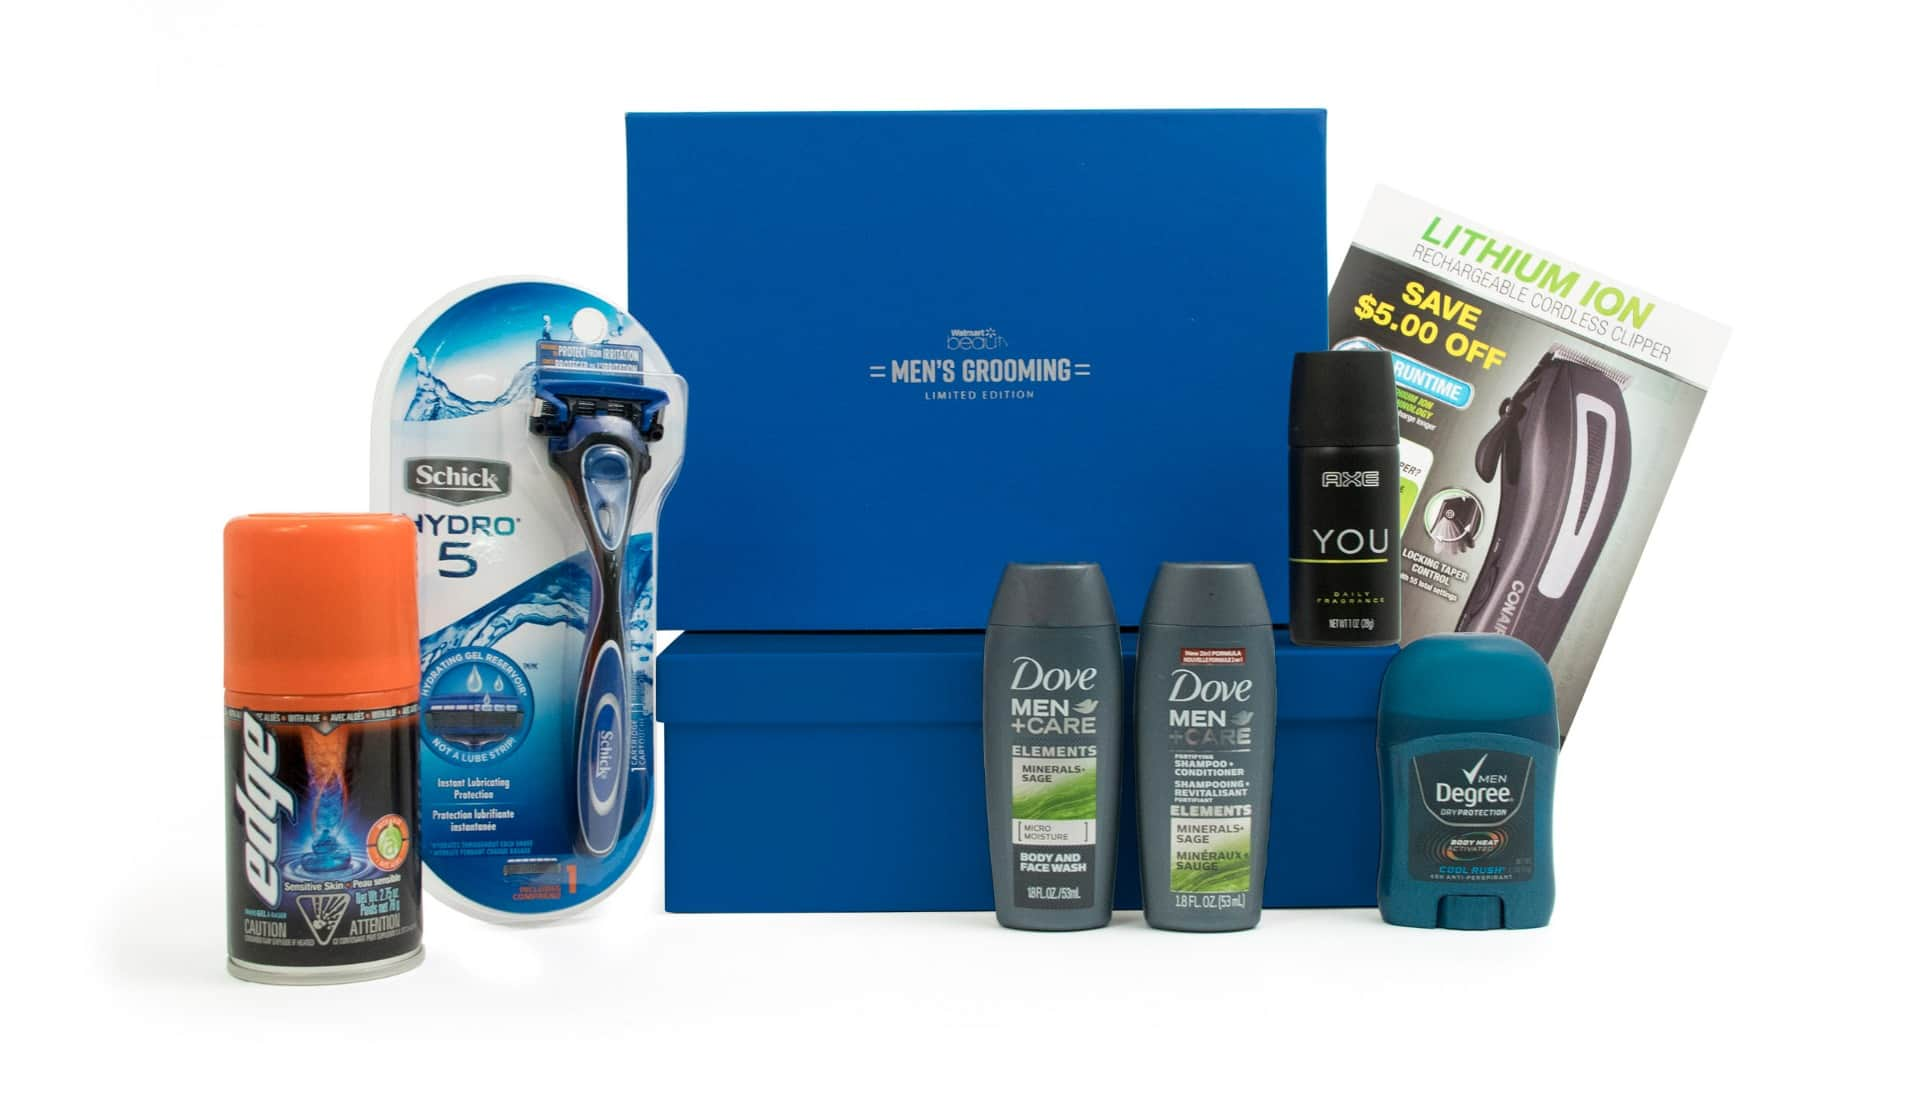 Walmart Limited Edition Men's Grooming Box $7 + Free Shipping